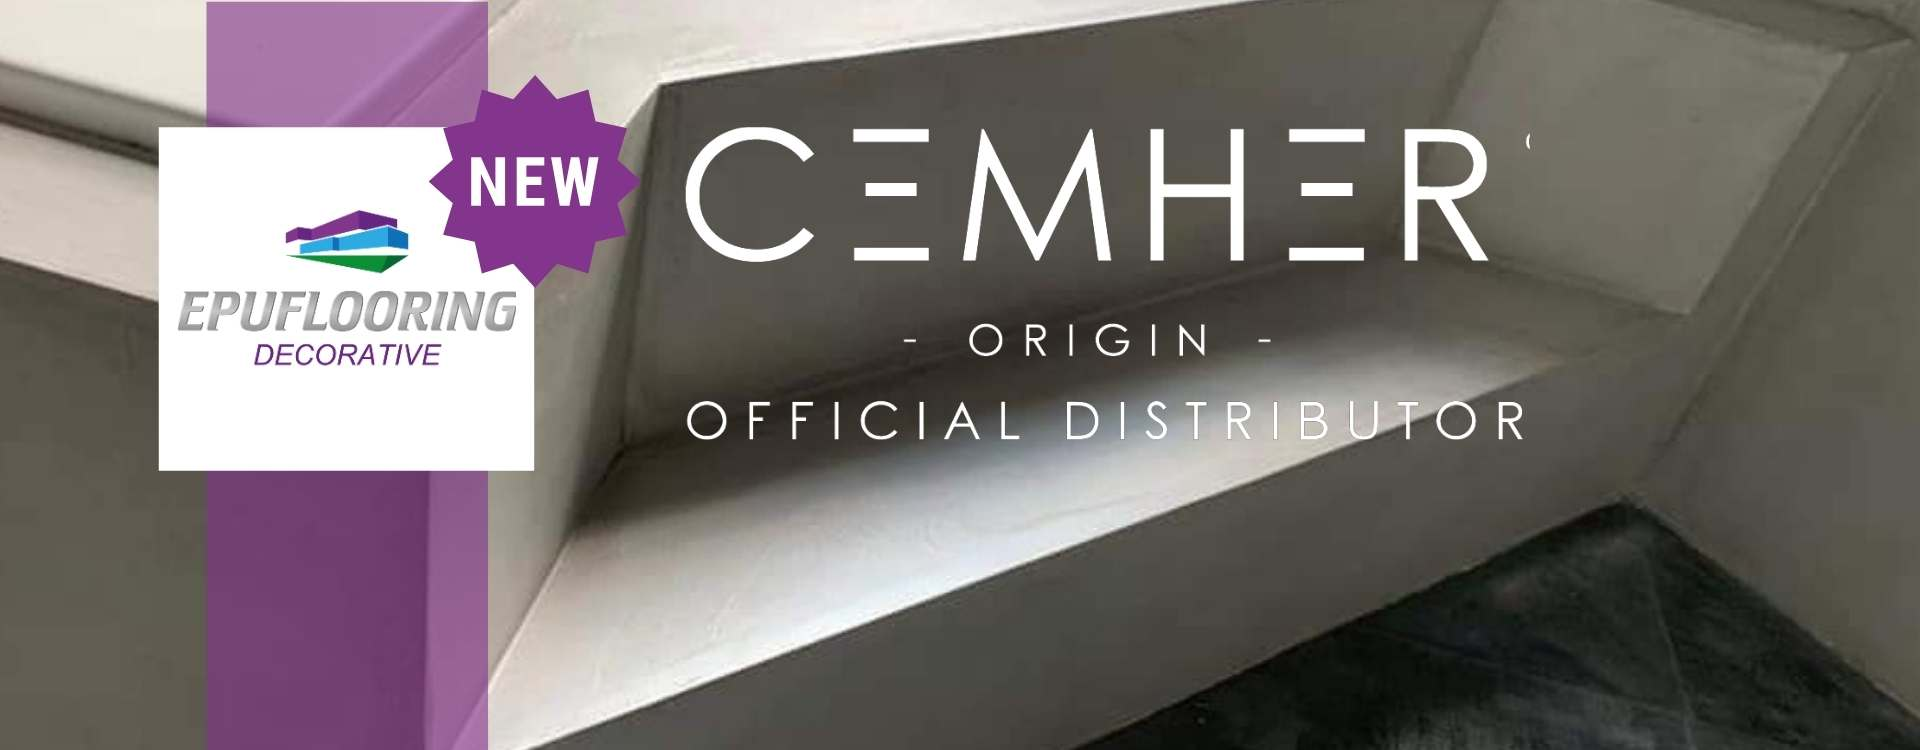 cemher